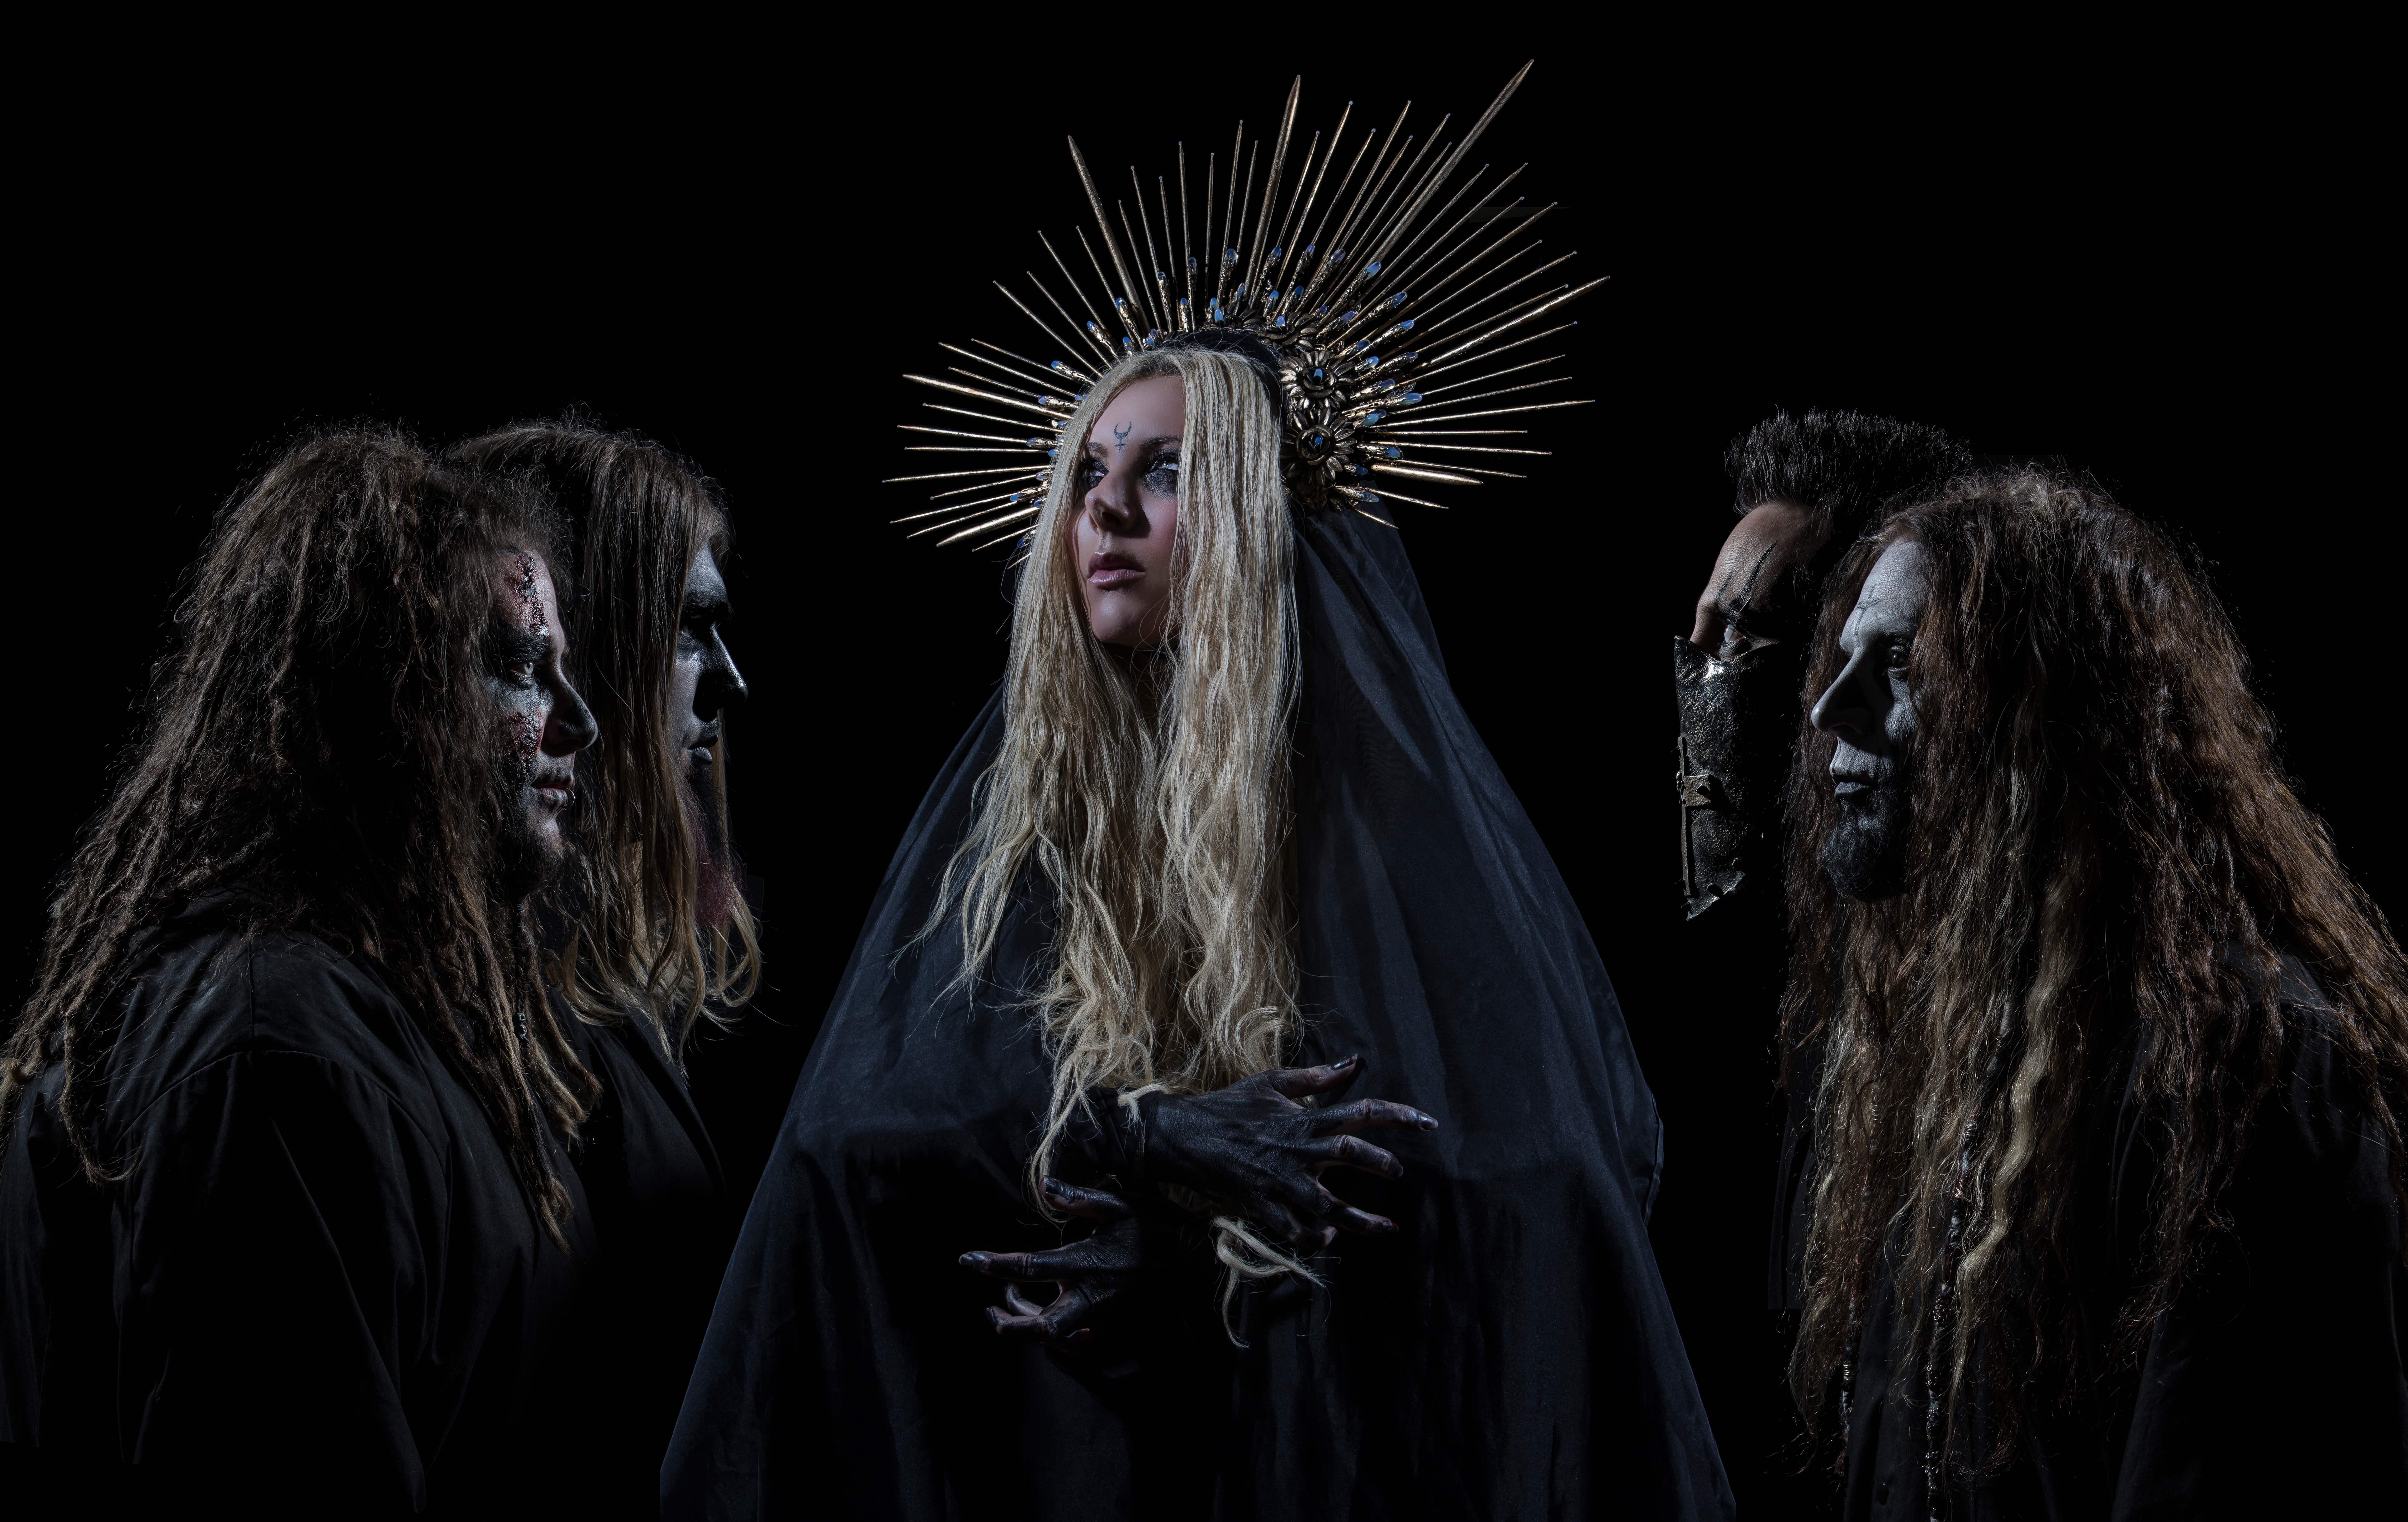 News: In This Moment have unveiled a dark new video for 'Black Wedding', featuring Judas Priest frontman, Rob Halford